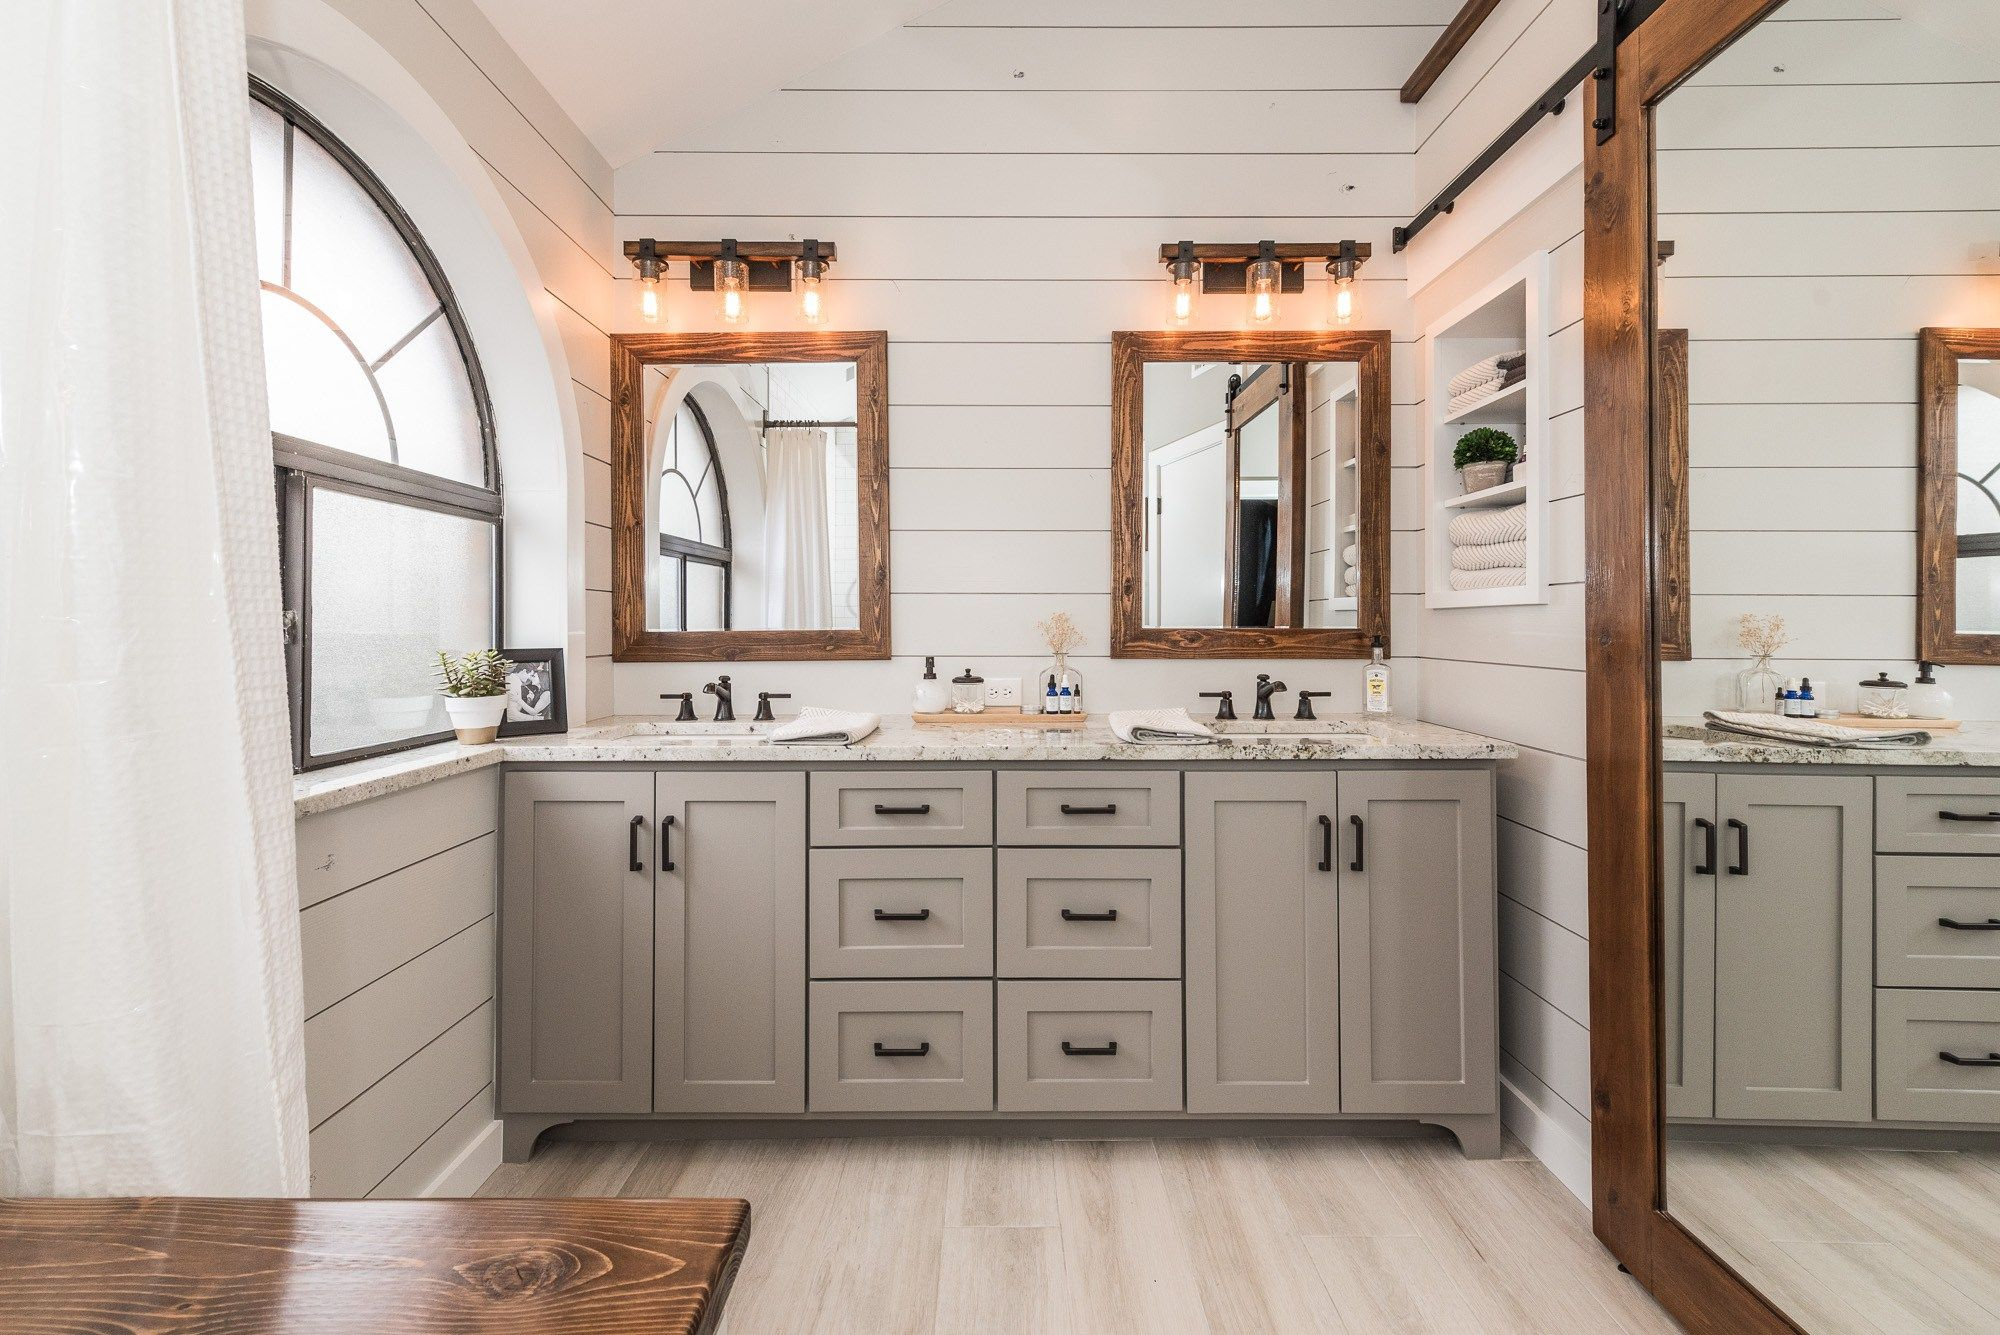 Shiplap crushed ice by sherwin williams vanity pavestone by sherwin williams walls pussywillow by sherwin williams trim extra white by sherwin williams